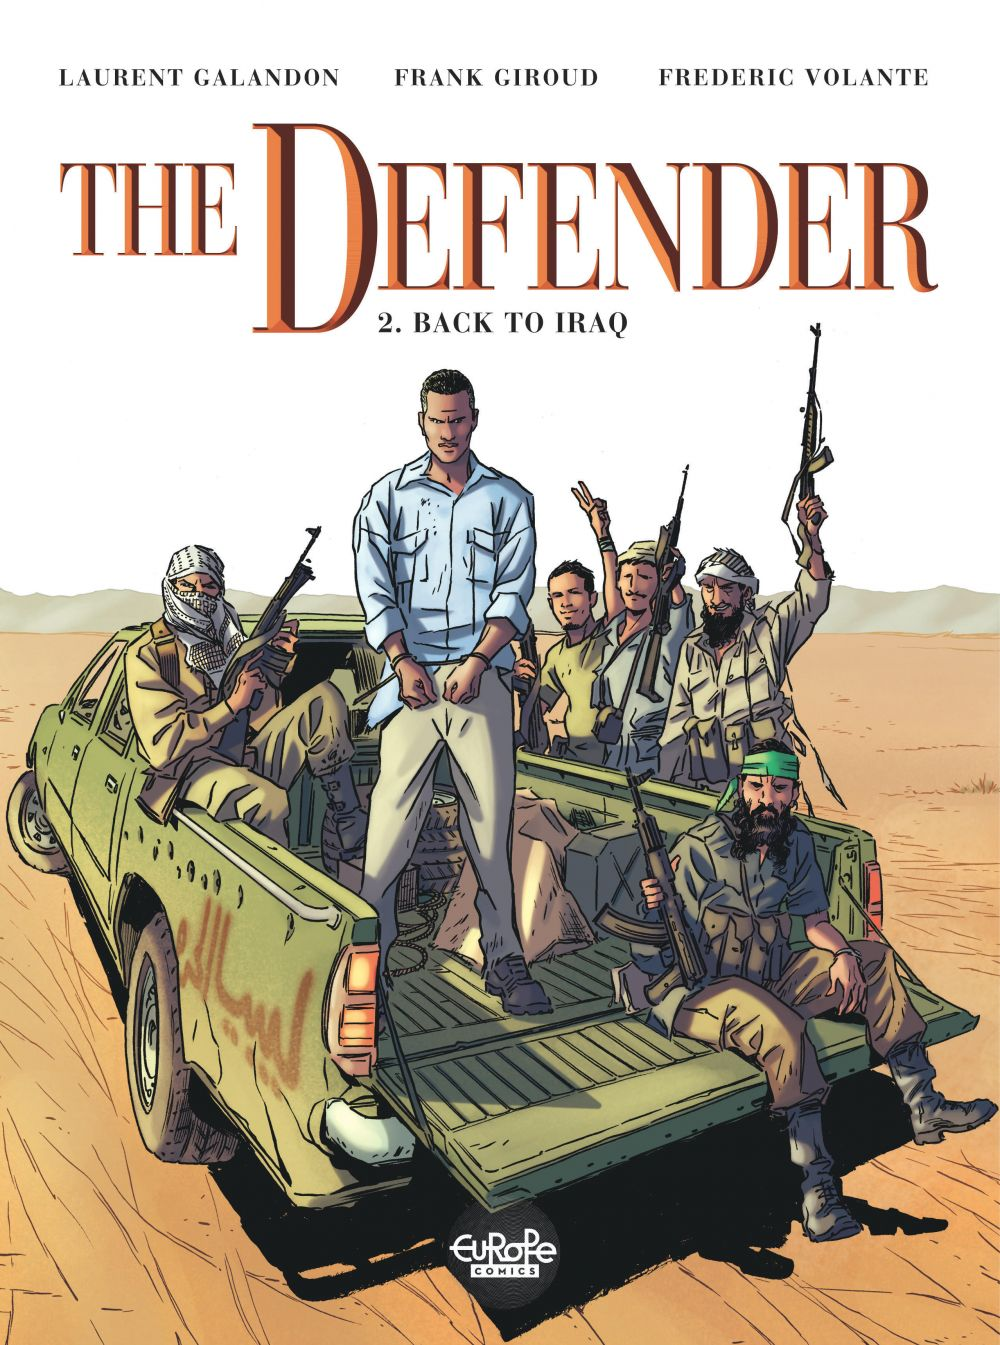 The Defender 2. Back to Iraq